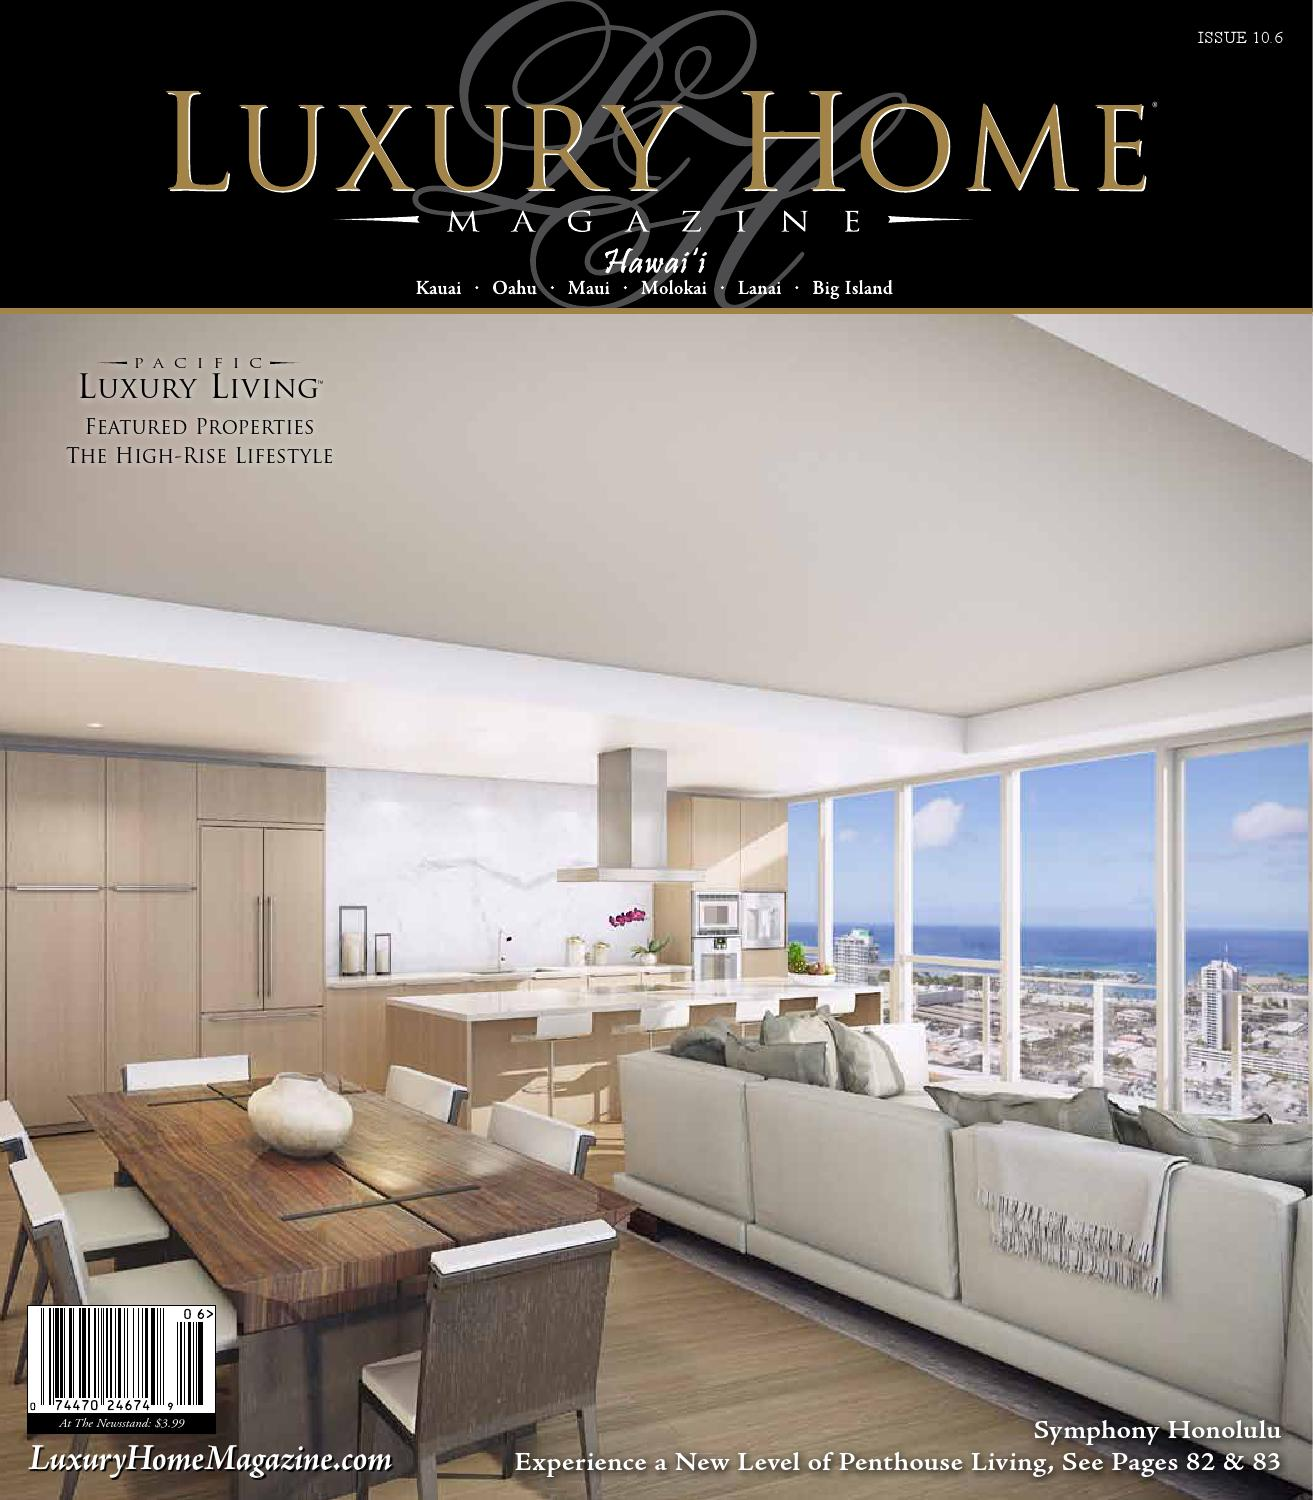 Luxury Home Magazine Hawaii Issue 10.6 By Luxury Home Magazine   Issuu